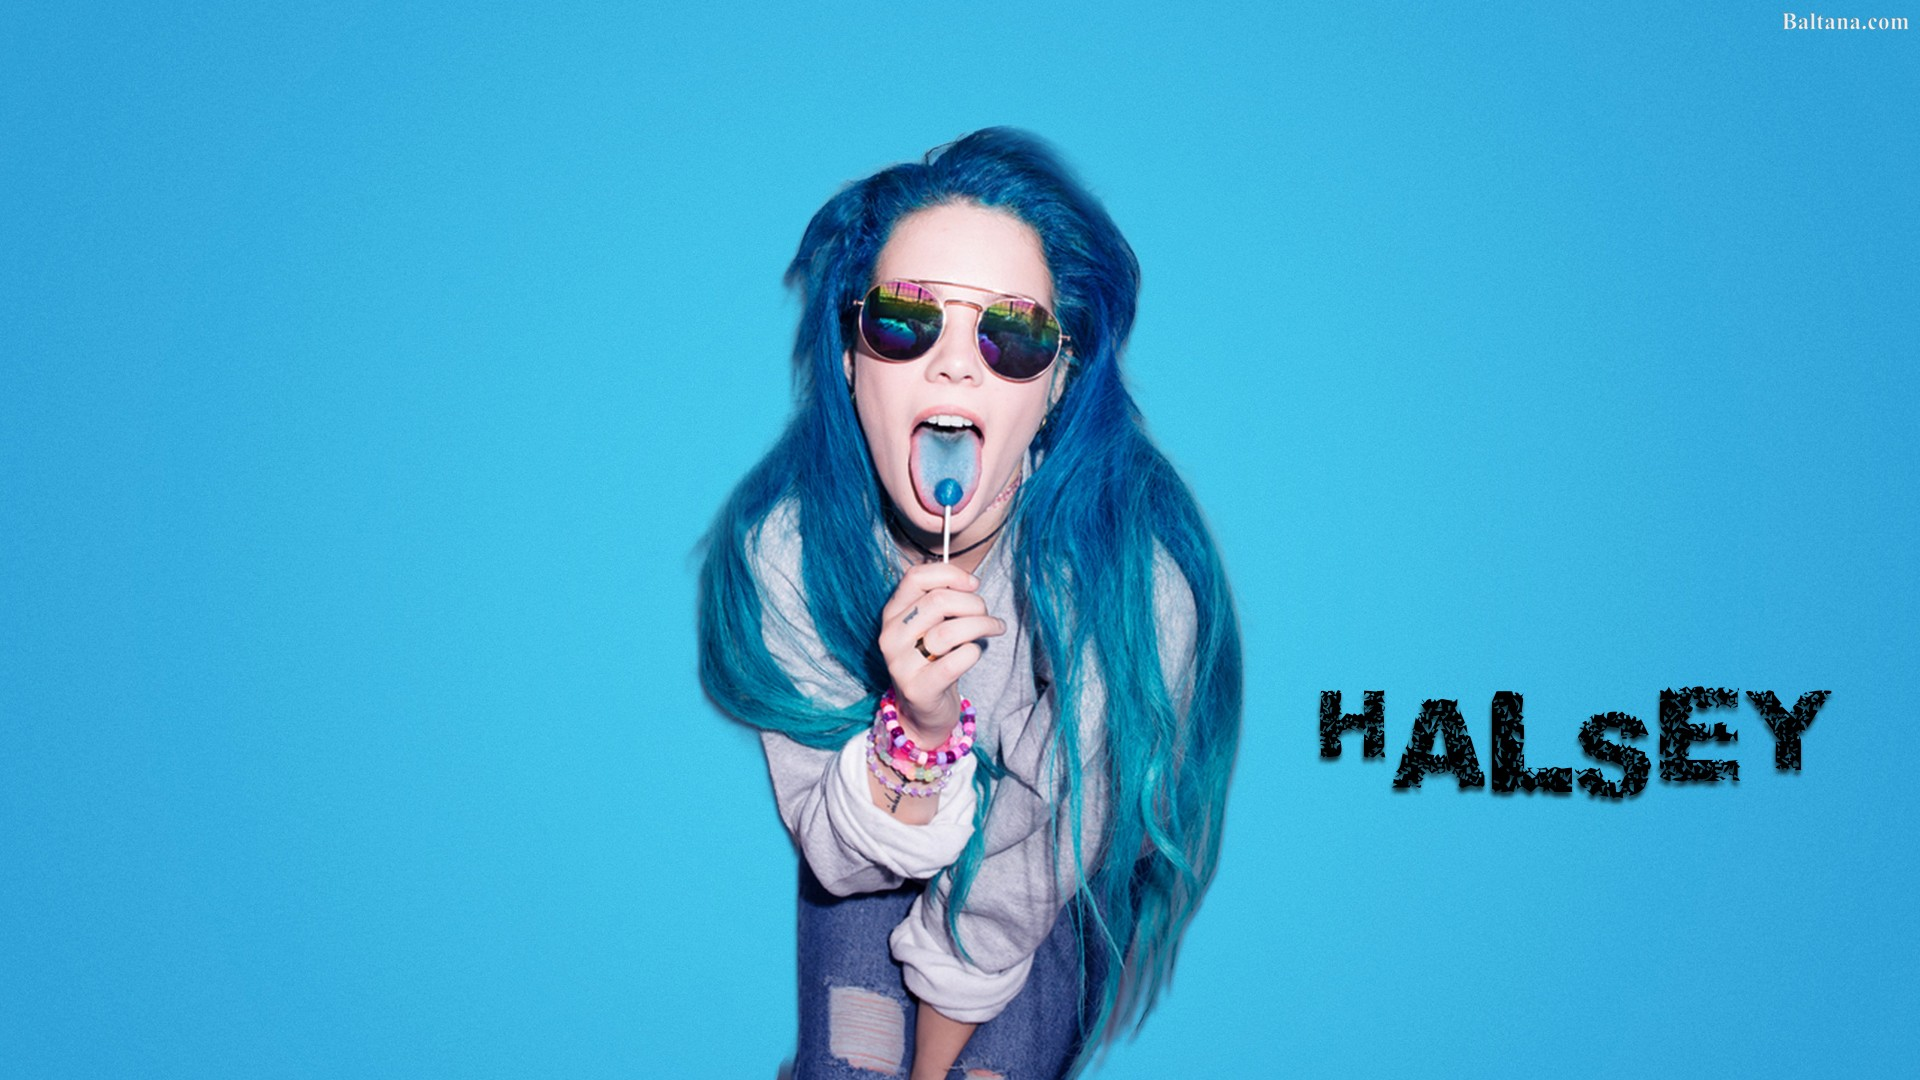 Halsey Wallpapers HD Backgrounds Images Pics Photos 1920x1080